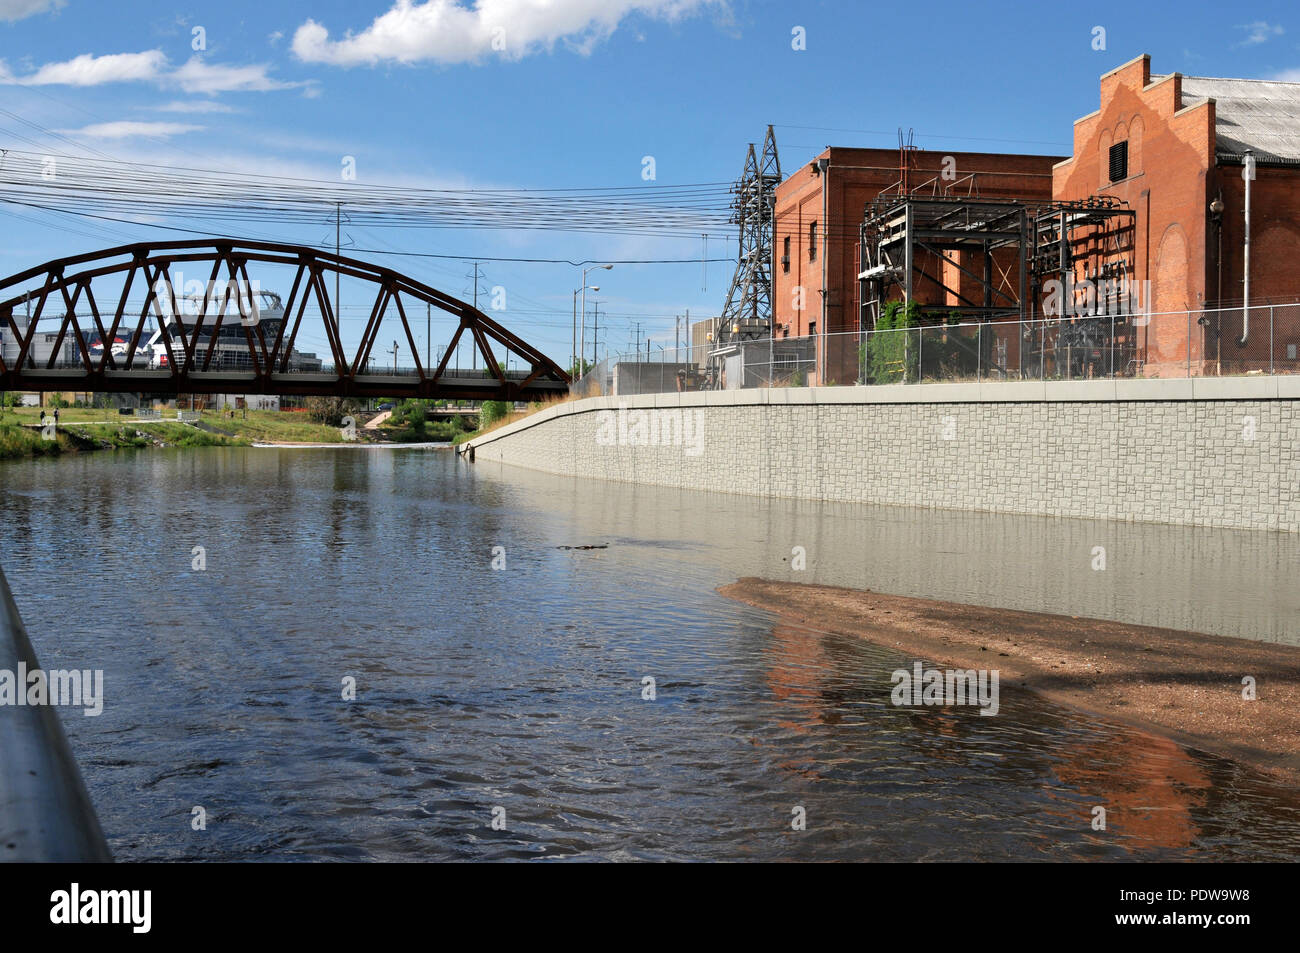 The power plant along the South Platte River in Denver, with Invesco Field in the background,  Exclusive Denver Stock Photos. - Stock Image